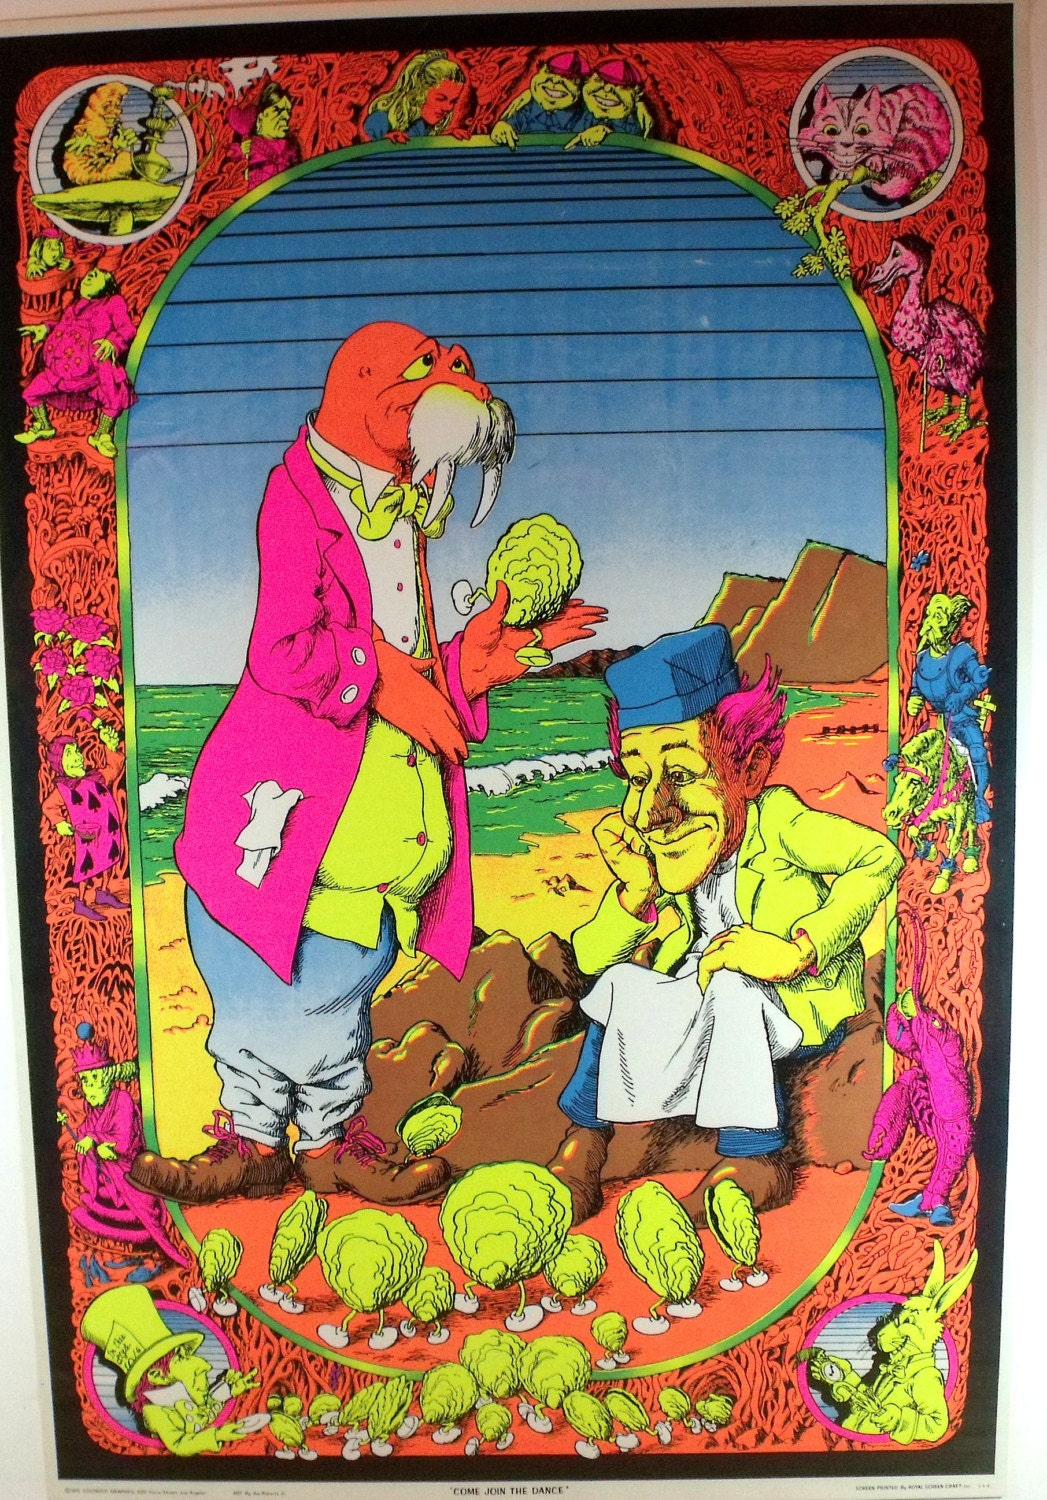 Vintage Blacklight Poster 1970 Come join the Dance